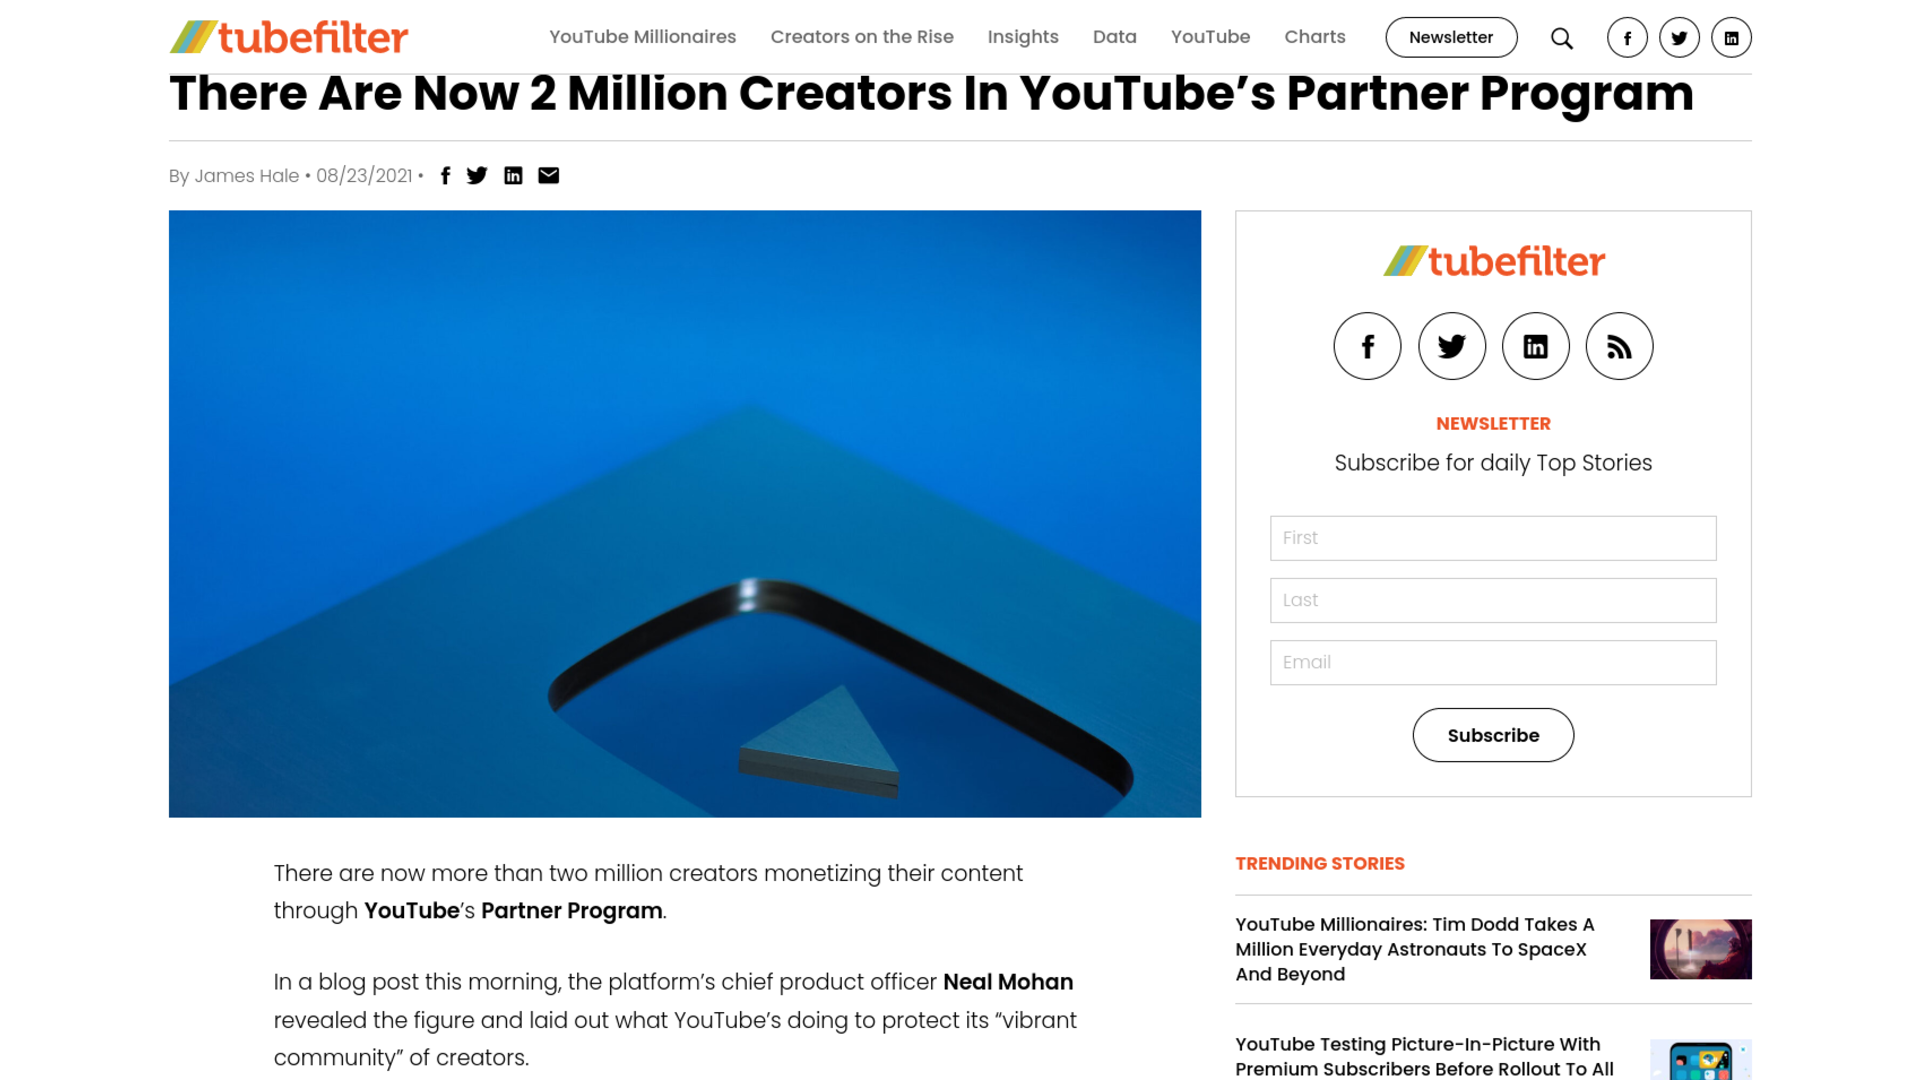 Fairness Rocks News There Are Now 2 Million Creators In YouTube's Partner Program